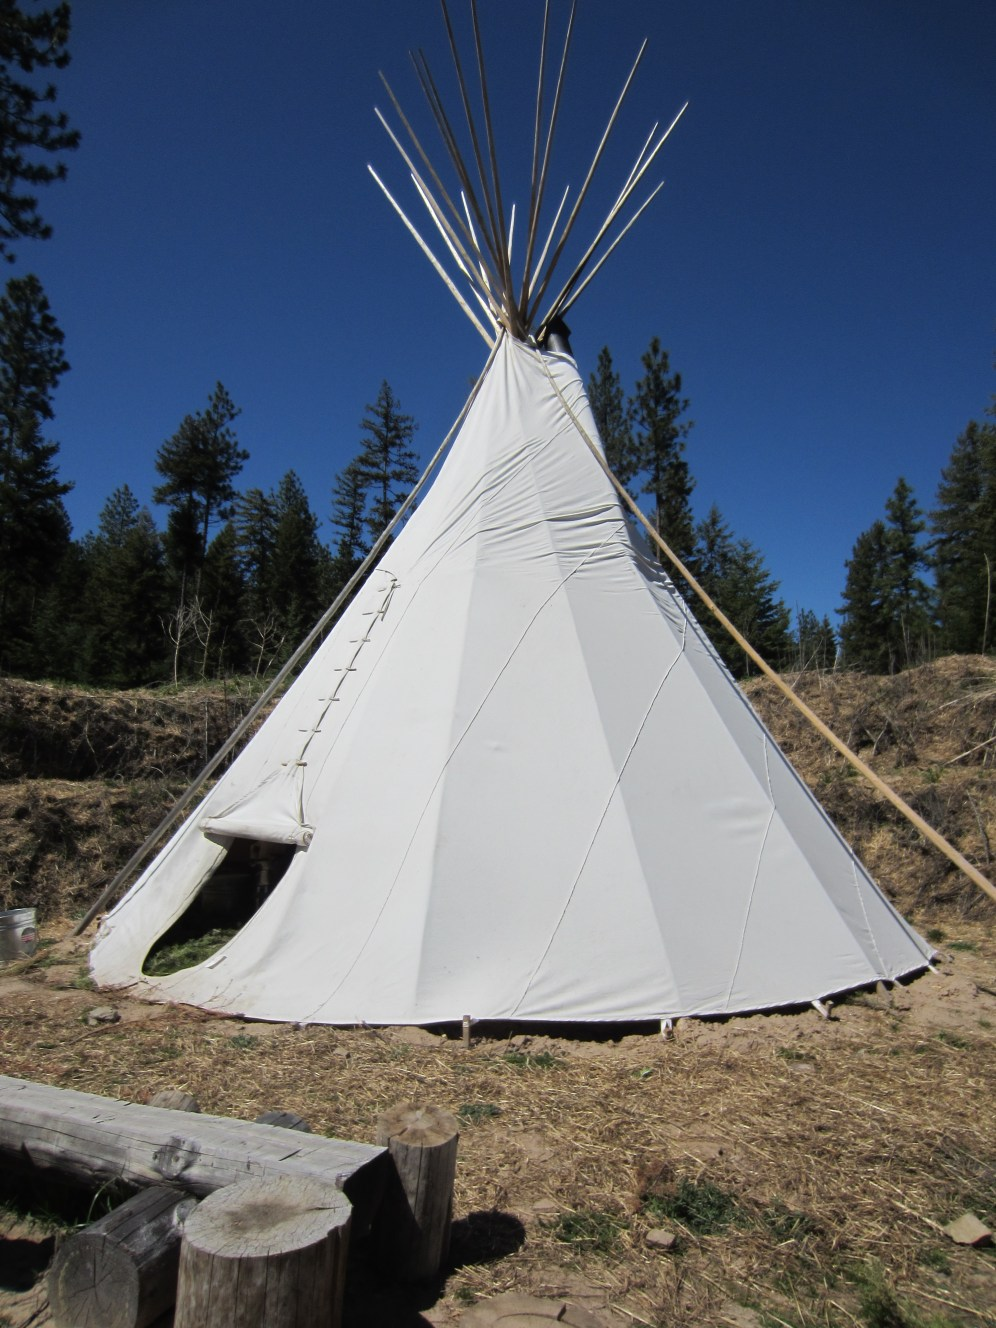 Private woodland surrounds the tipi